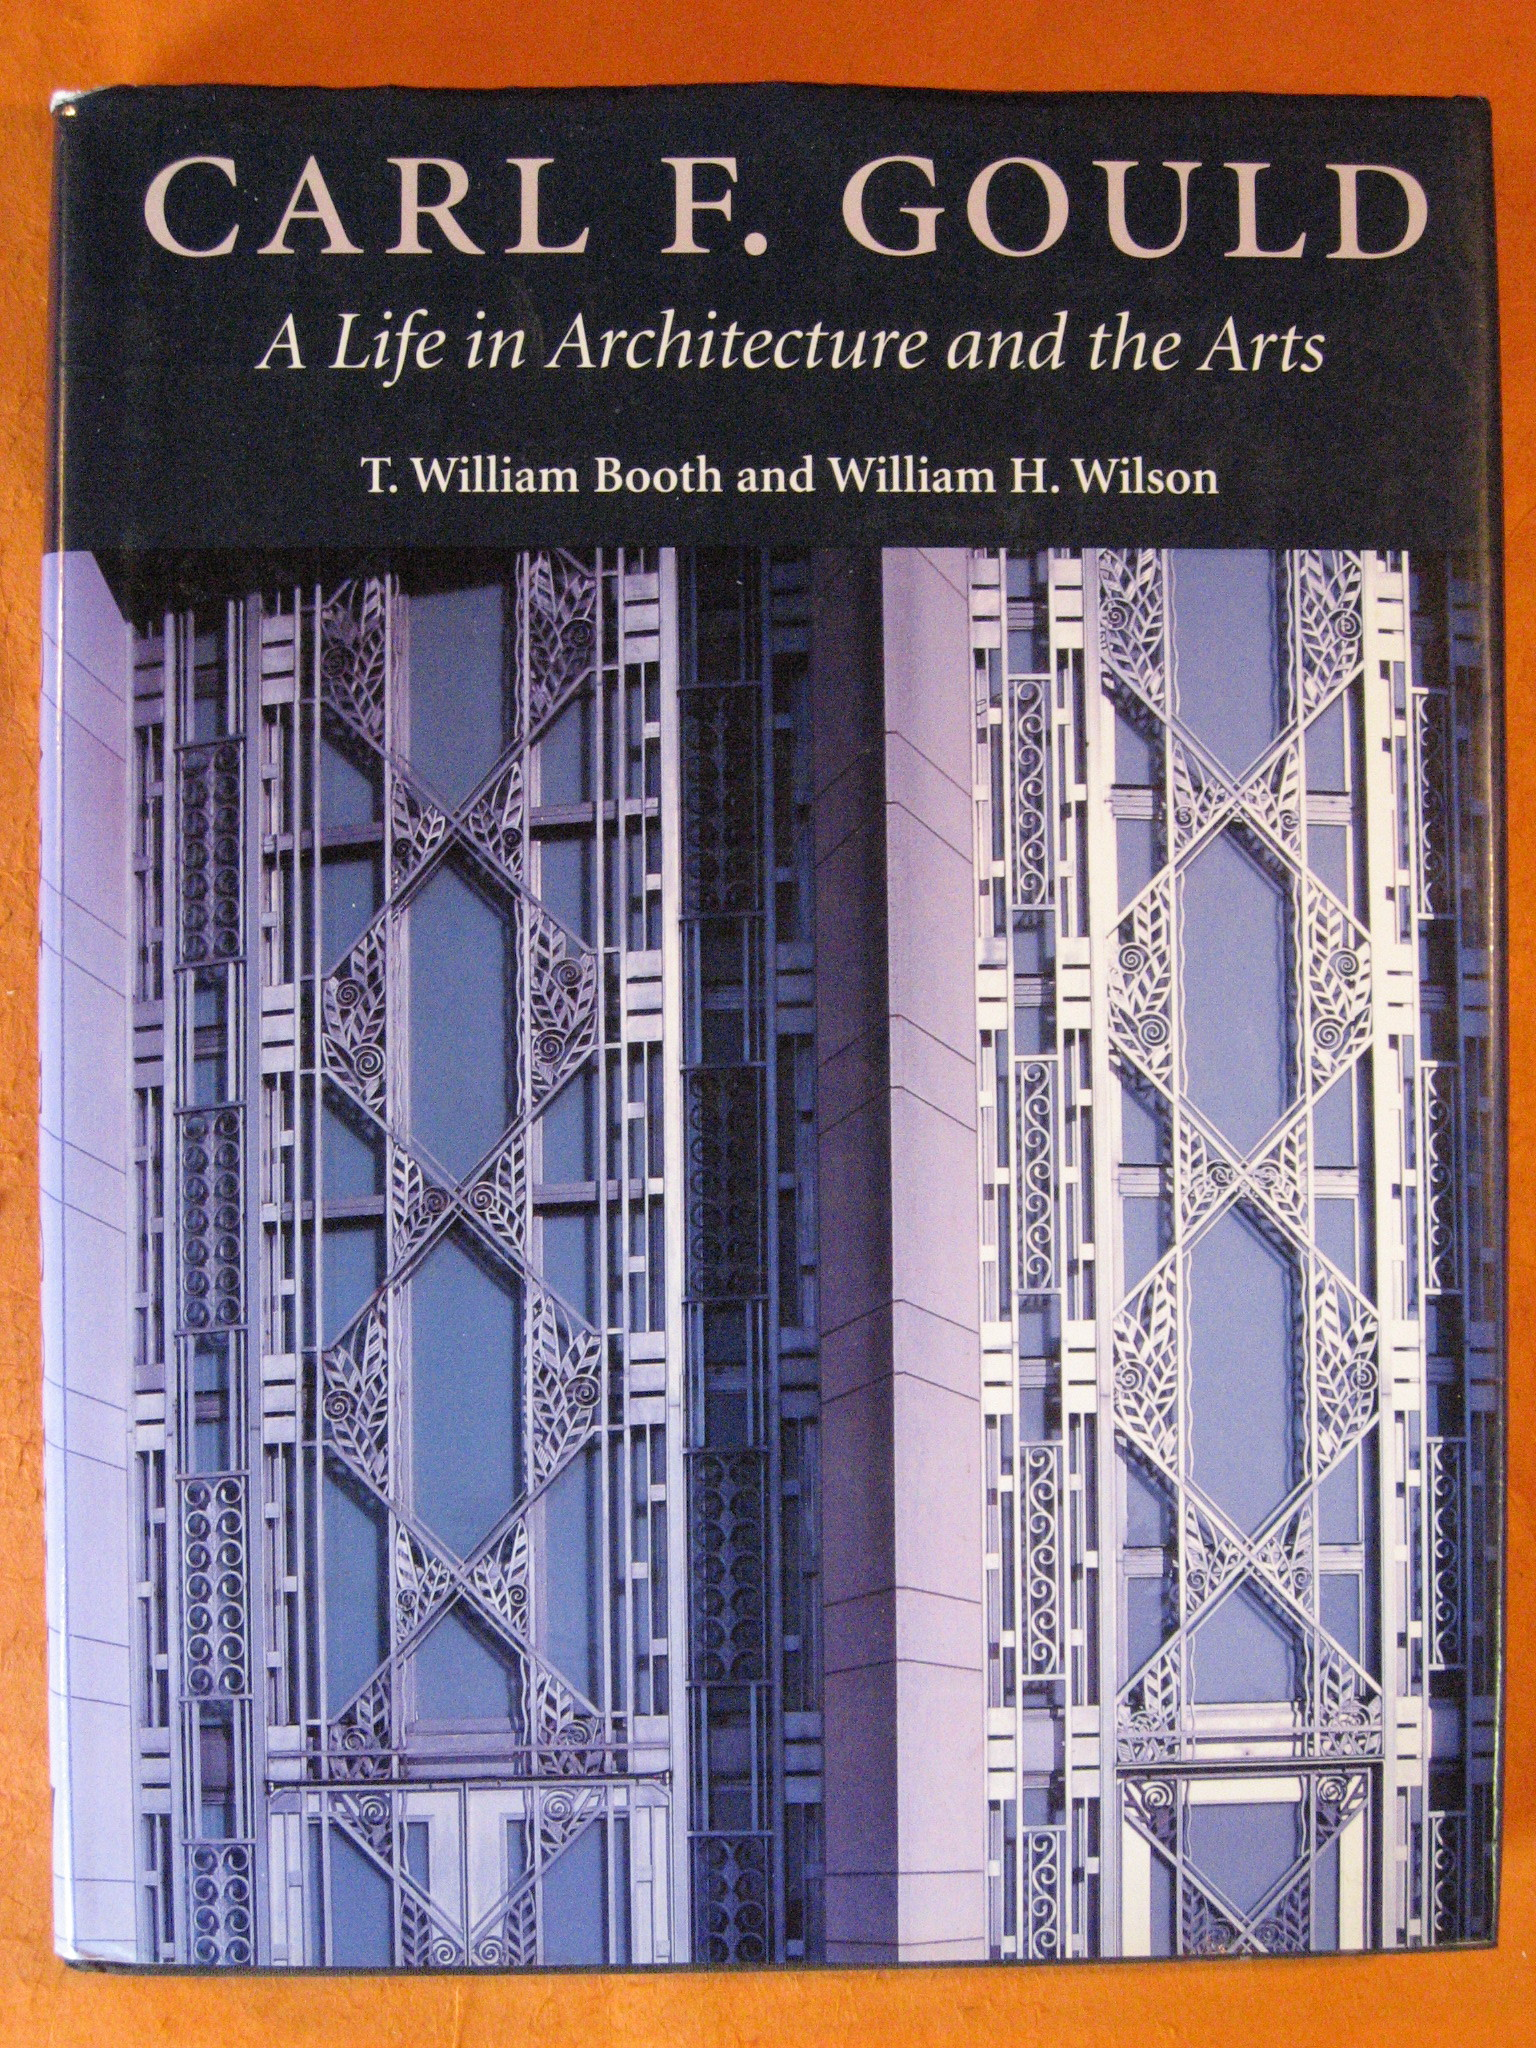 Carl F. Gould: A Life in Architecture and the Arts, Booth, T. William; Wilson, William H.